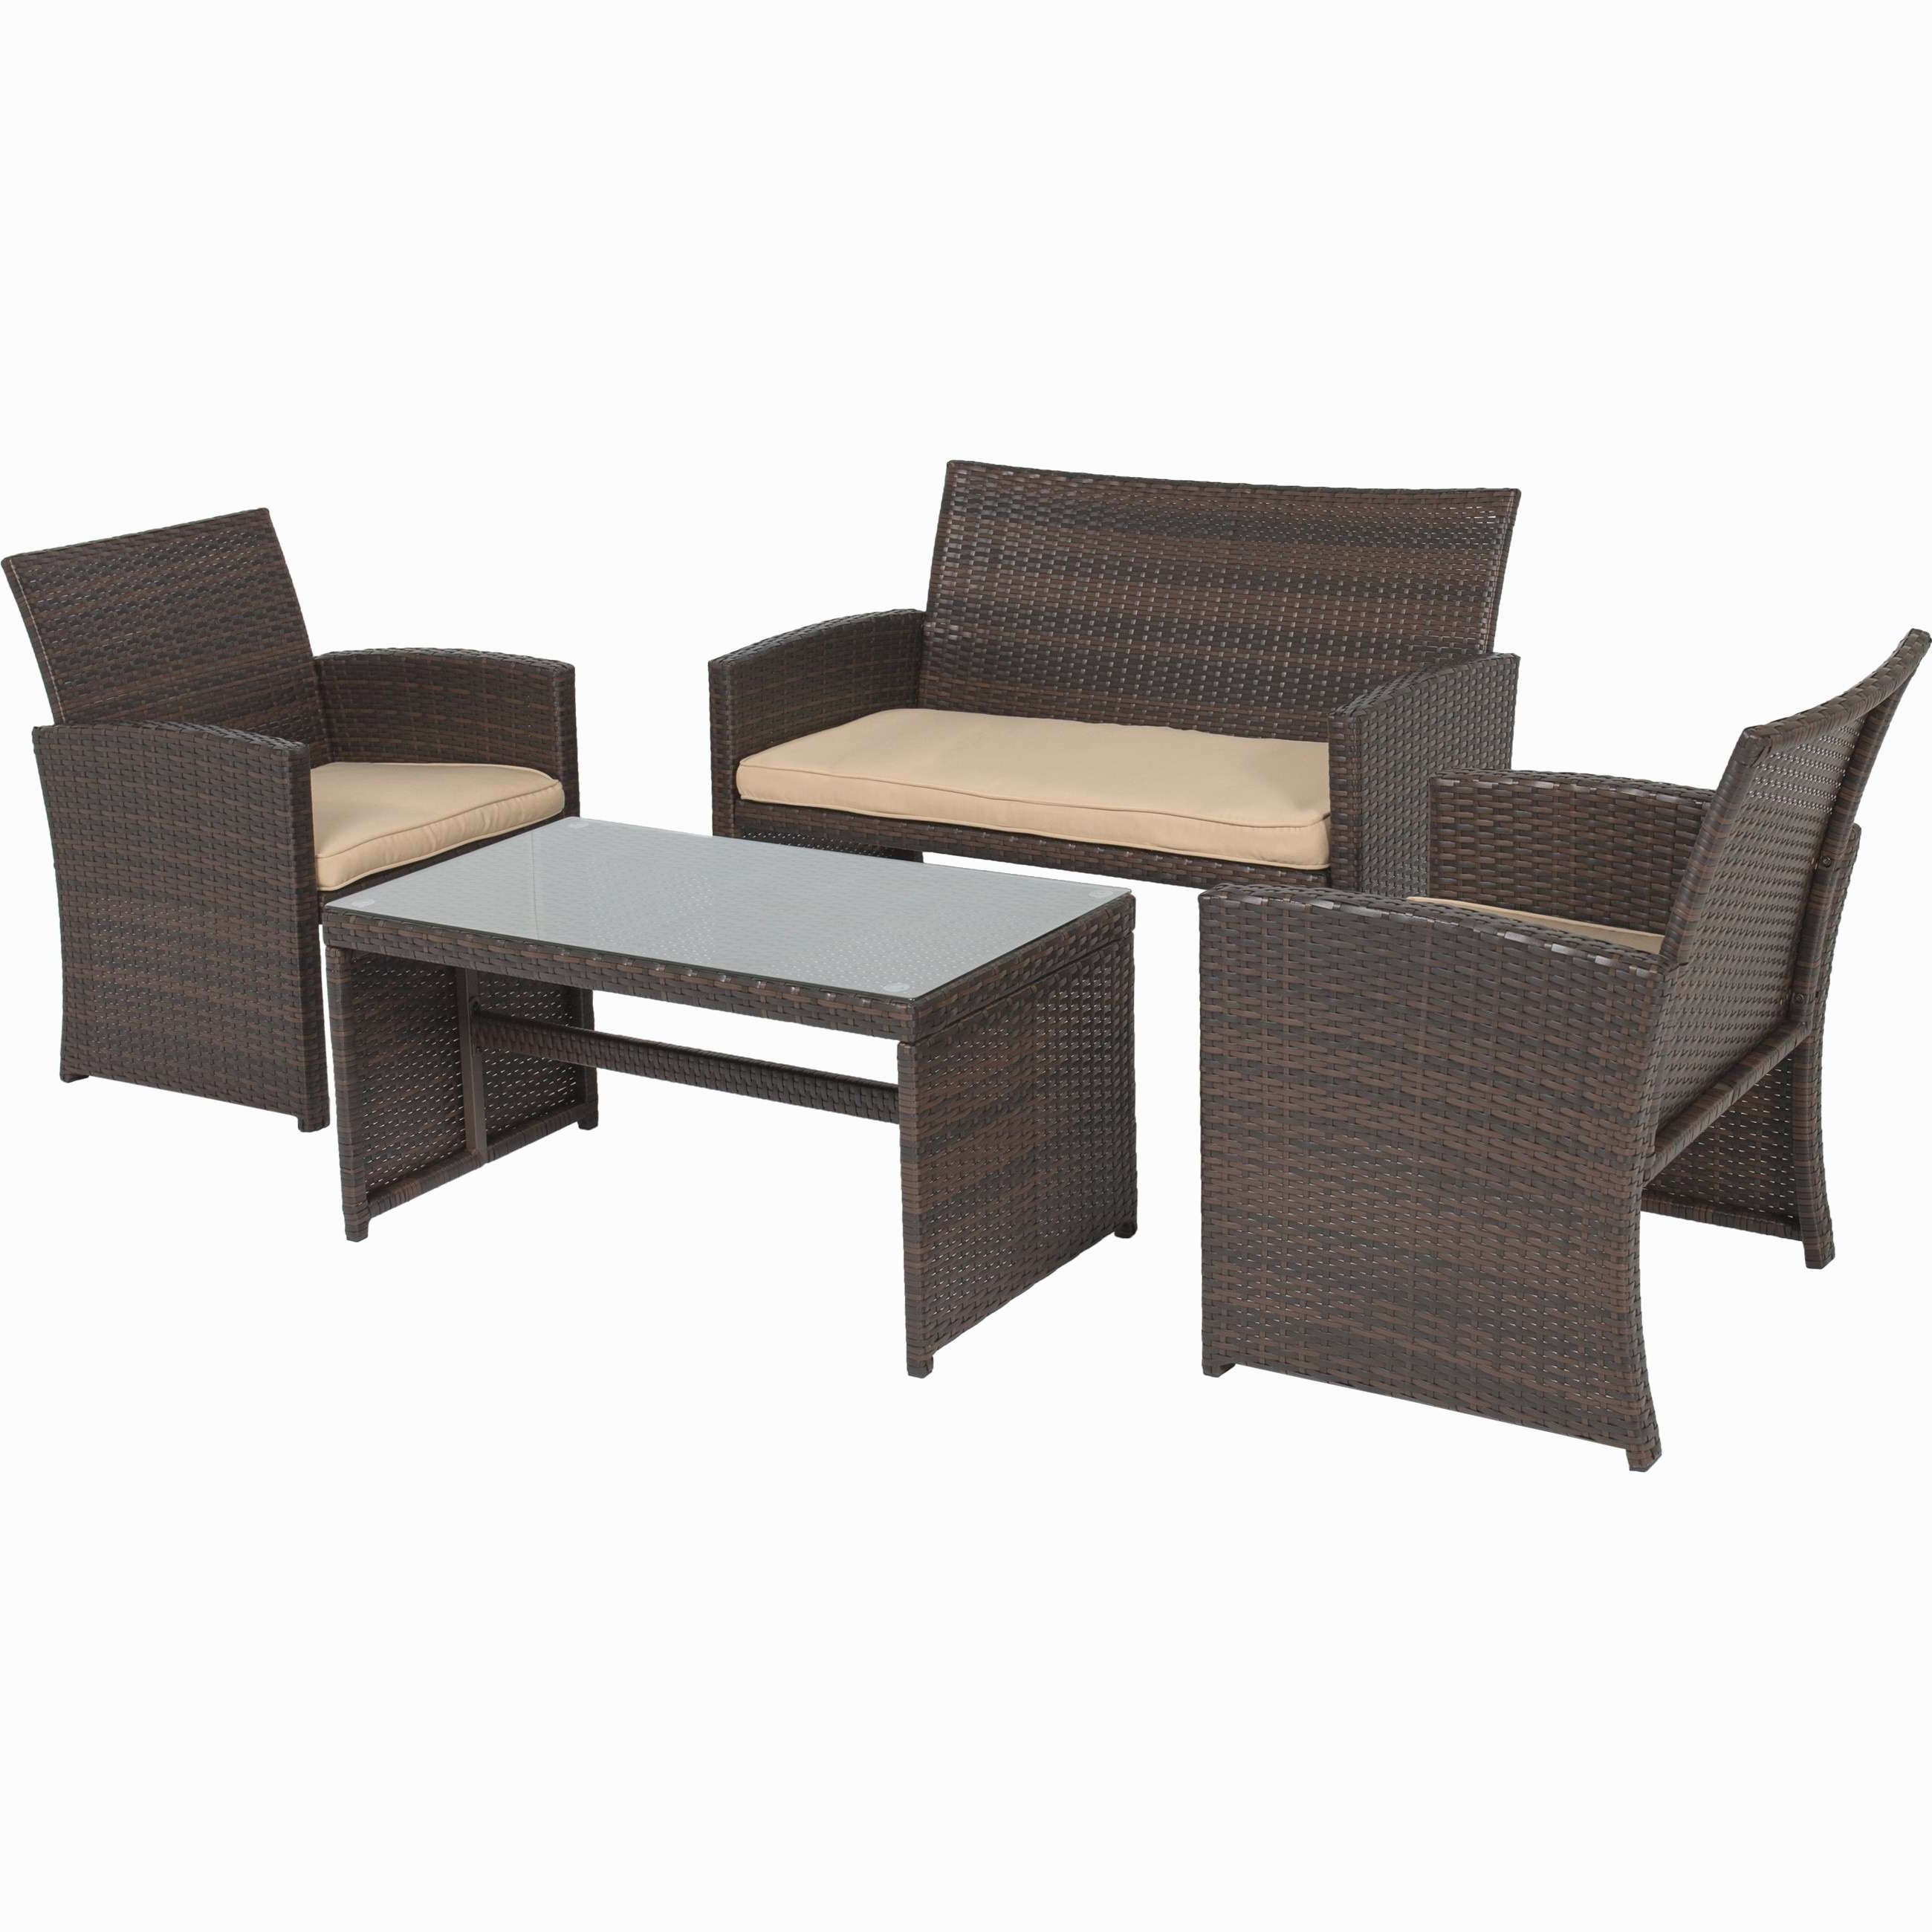 Trendy Patio Conversation Sets At Sam's Club With Regard To Sam's Club Business Card Beautiful 8 Sam S Club Outdoor Patio (View 17 of 20)